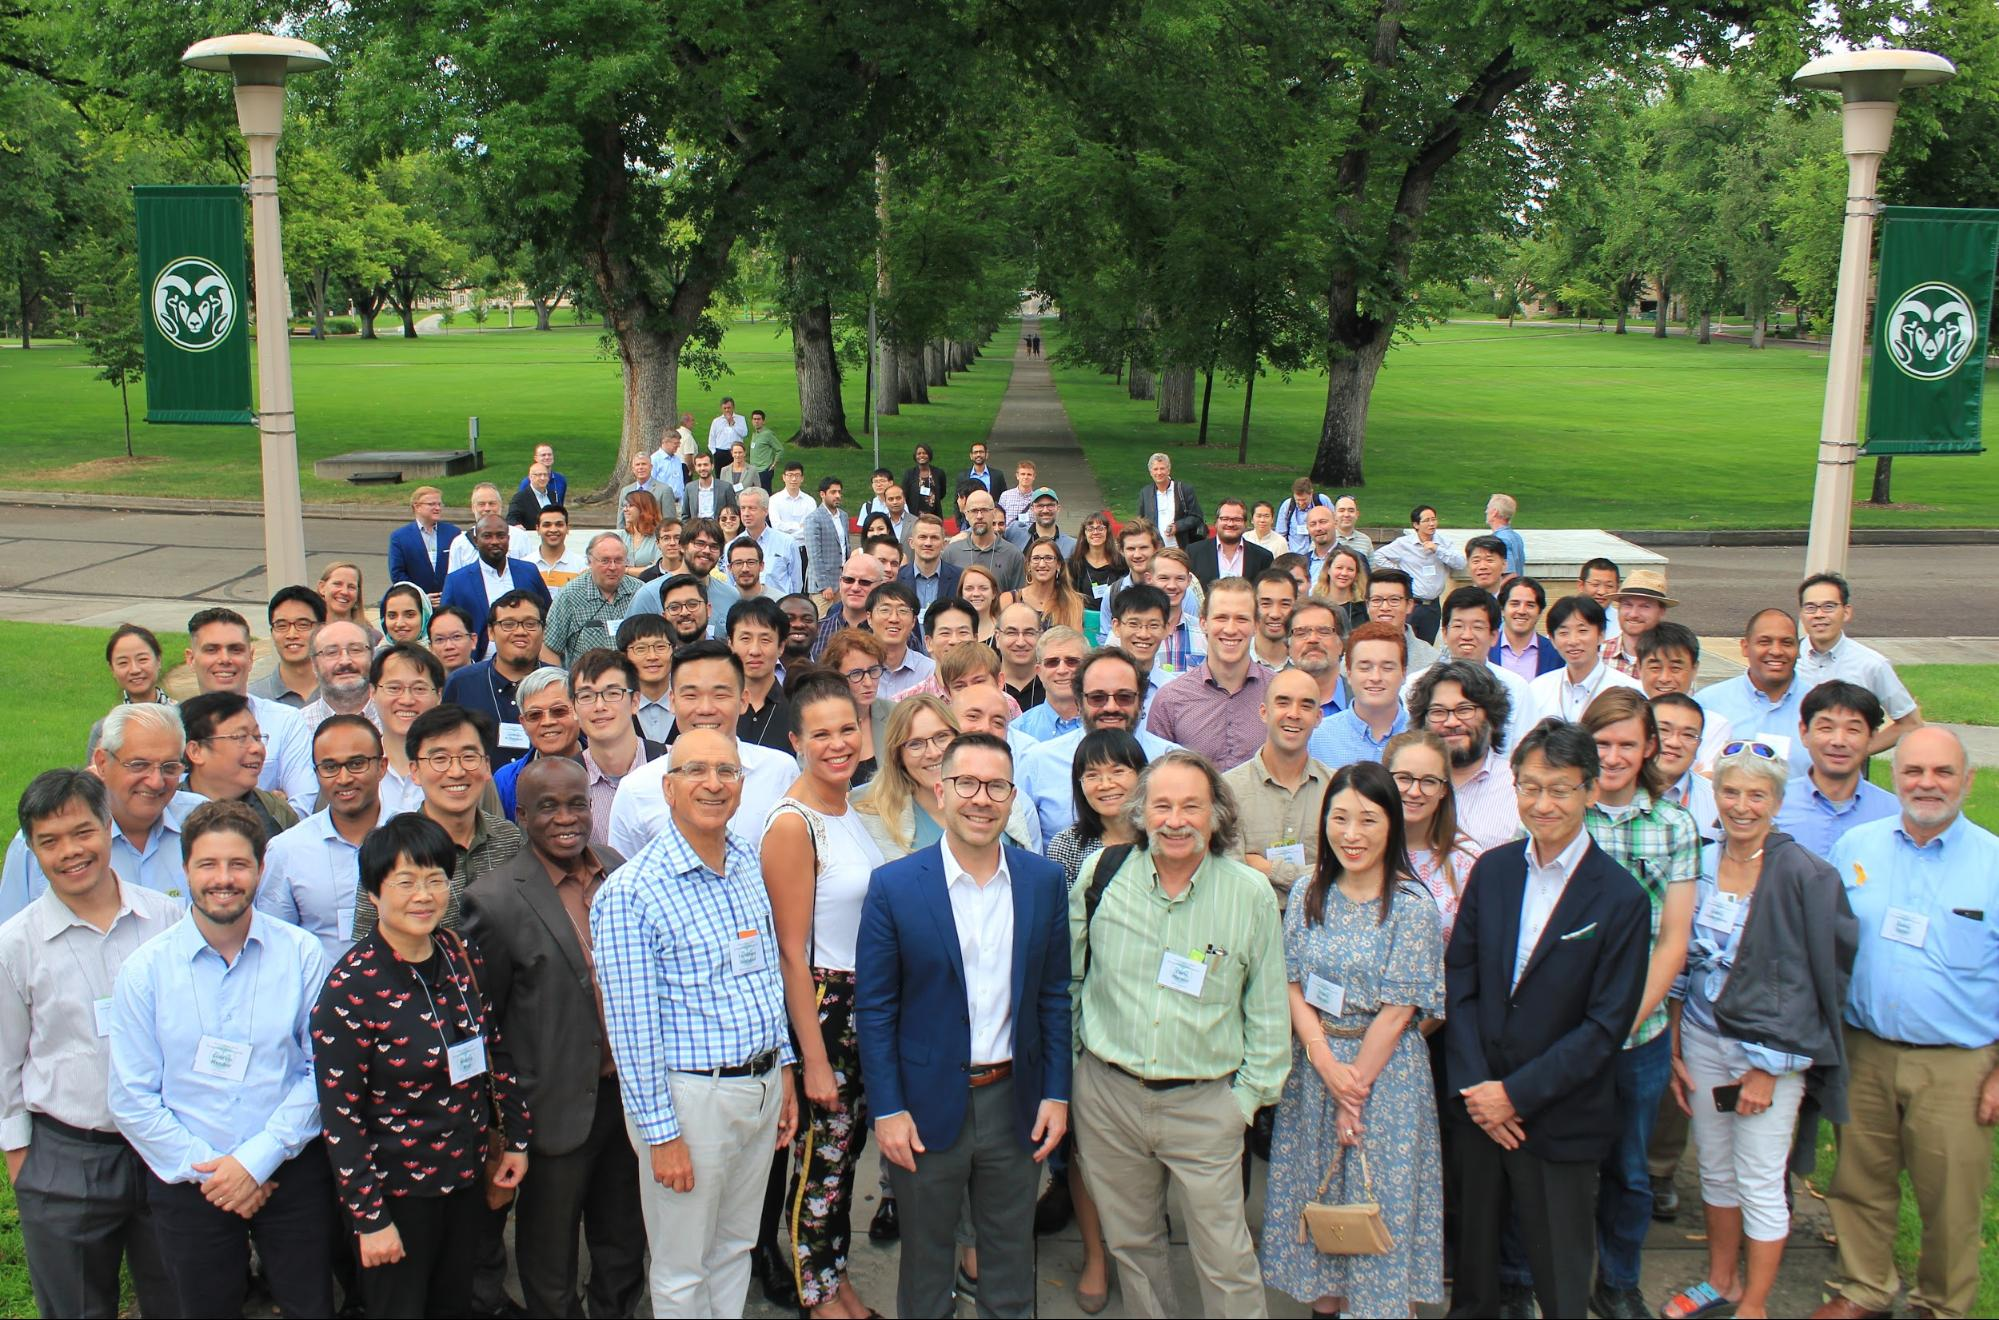 Group Photos with 134 researchers from 24 countries who participated in the Fort Collins 2019 Symposium on Microgrids